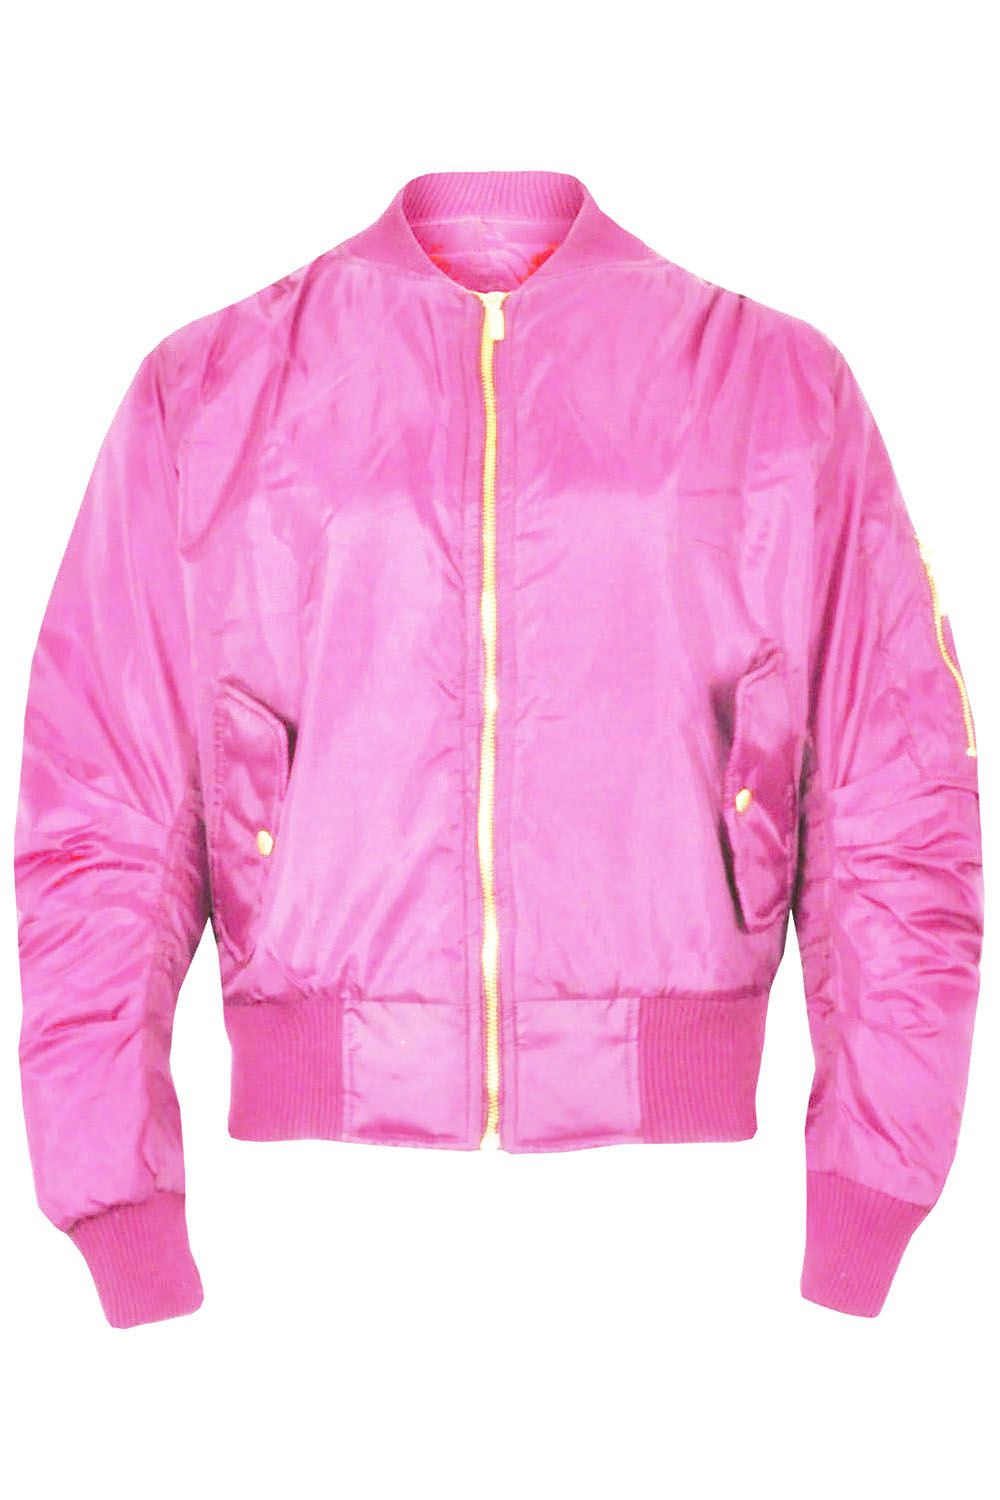 Kids Pink Bomber Jacket - Jackets In My Home